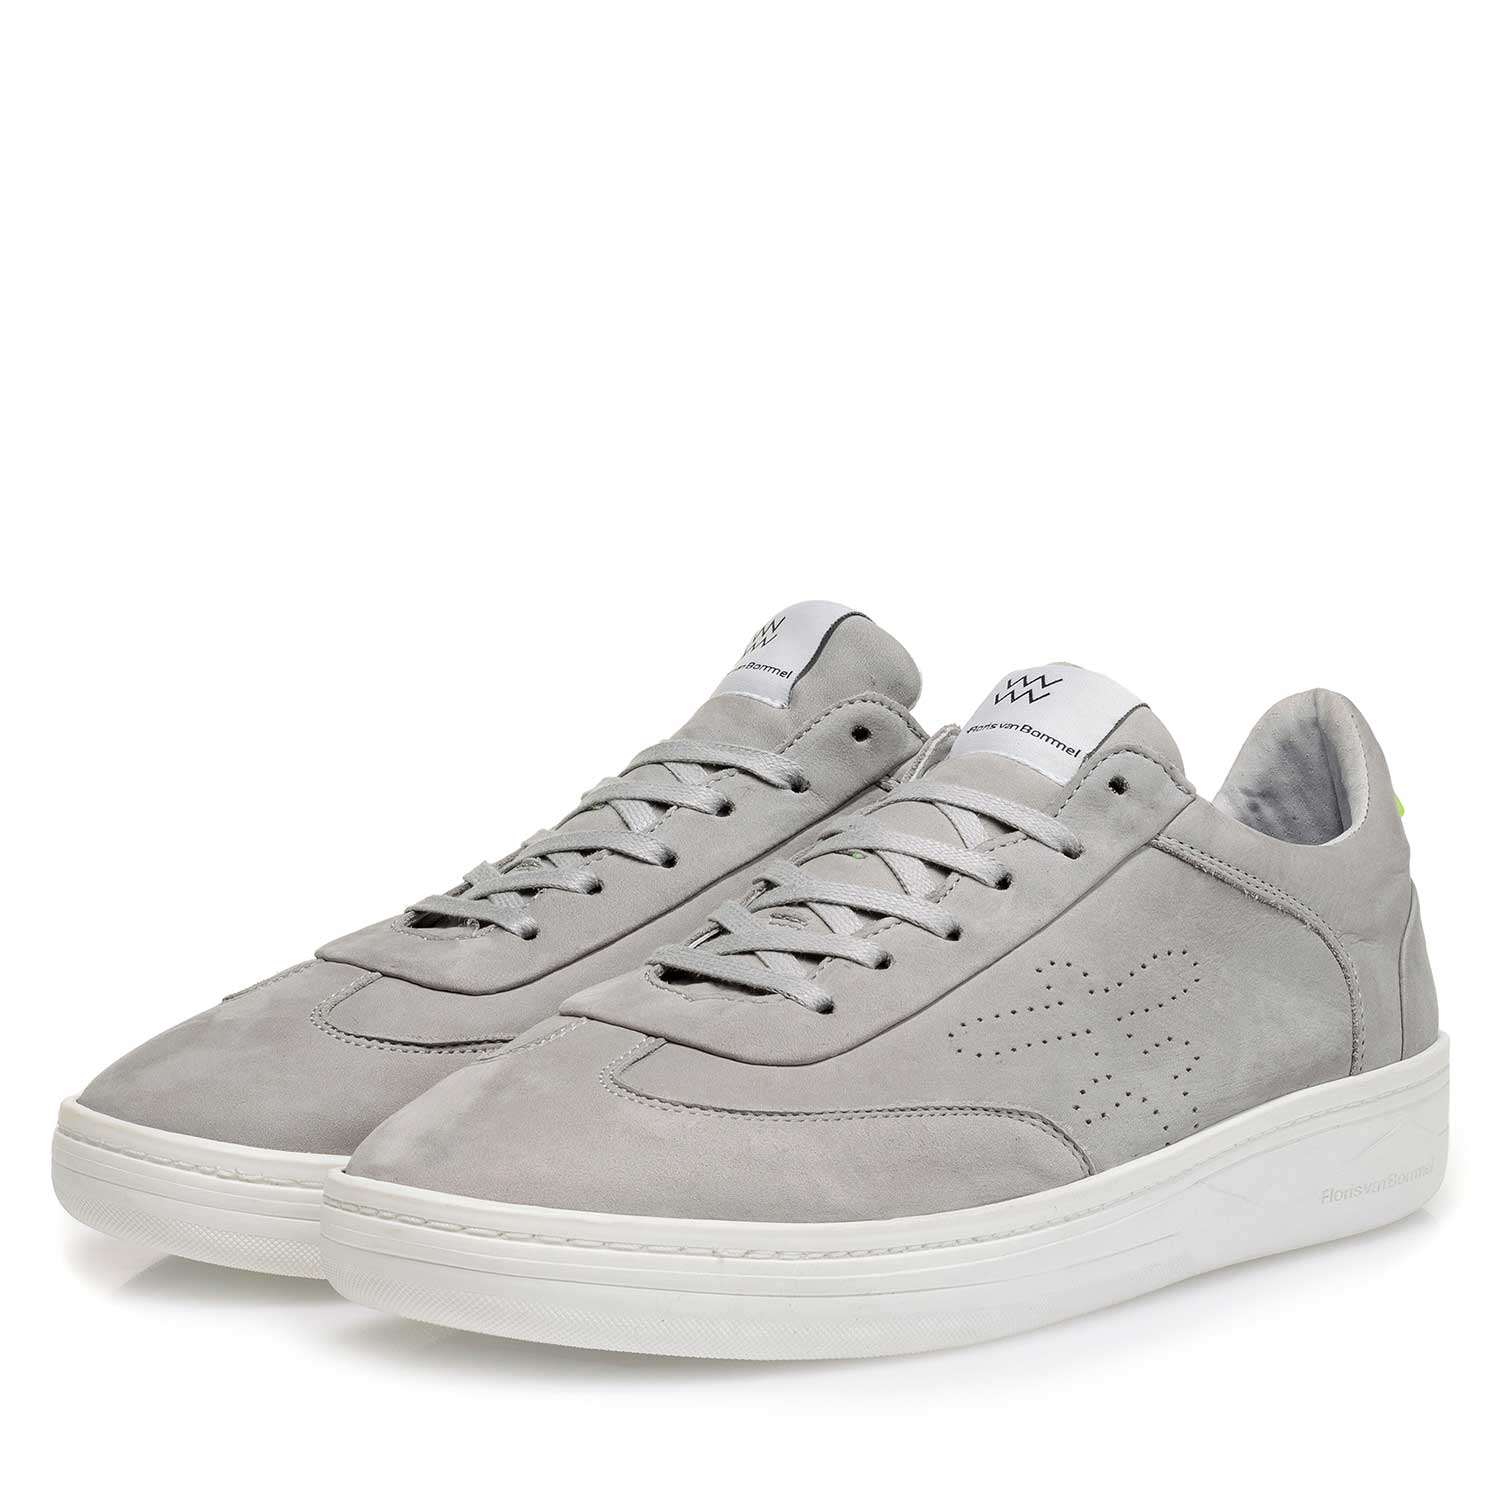 16255/03 - Light grey nubuck leather sneaker